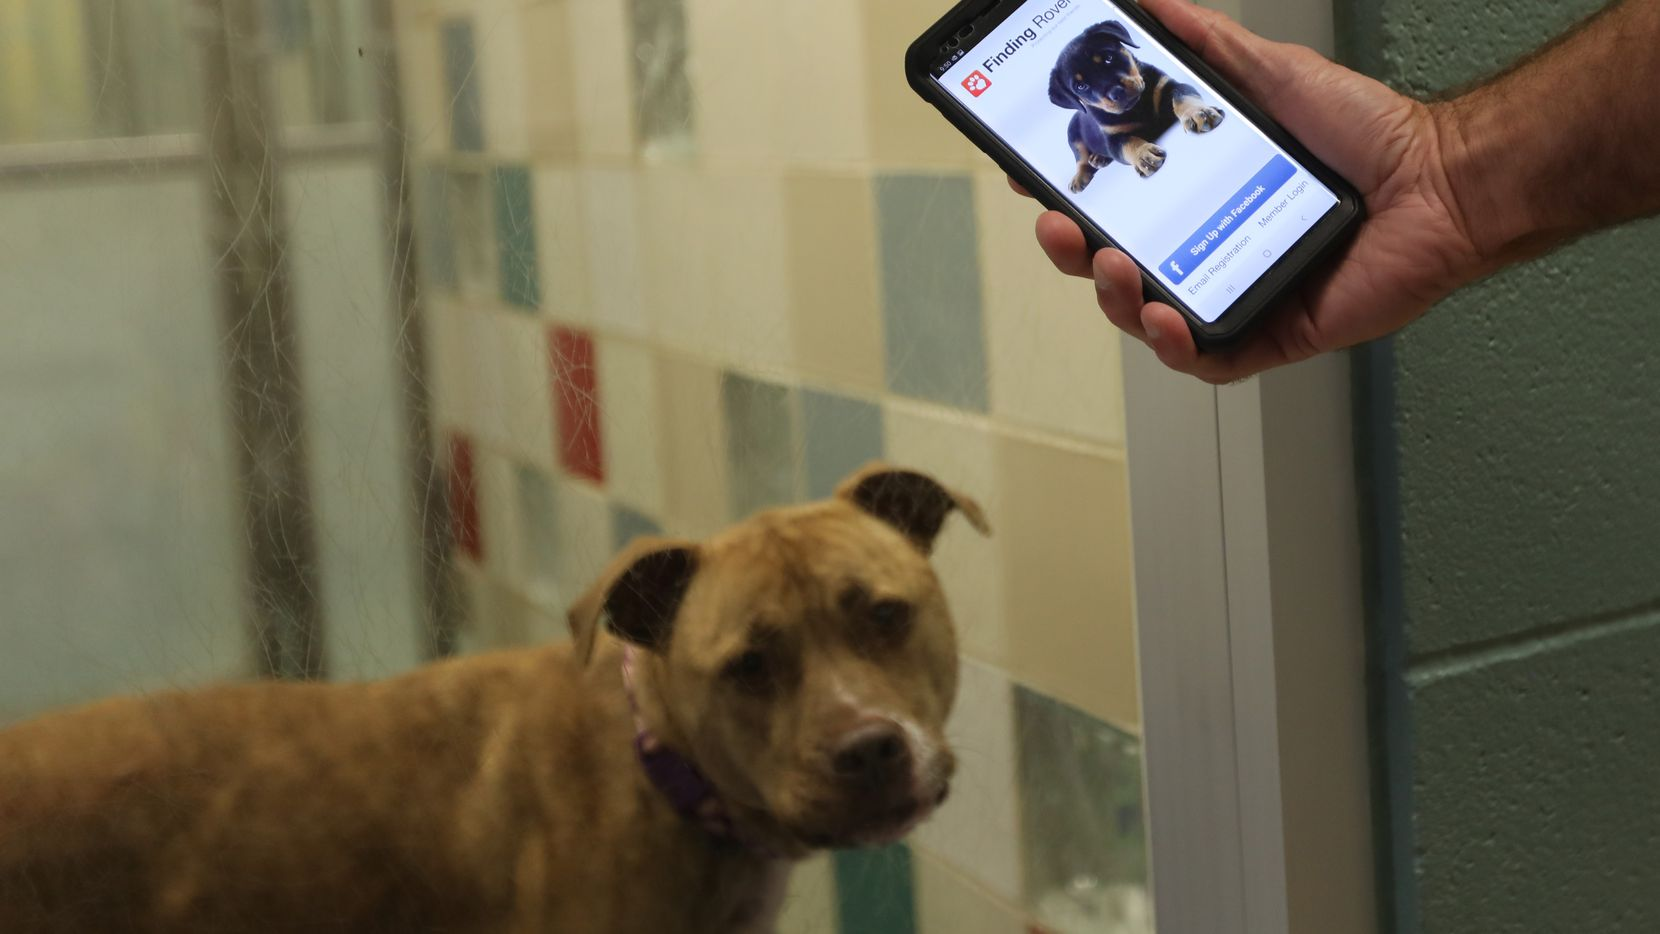 Jamey Cantrell holds his phone with the Finding Rover app at the Plano Animal Services Department. The Plano animal shelter is using Finding Rover, an app that uses facial recognition technology, to help pet owners find their lost animals when they go missing.